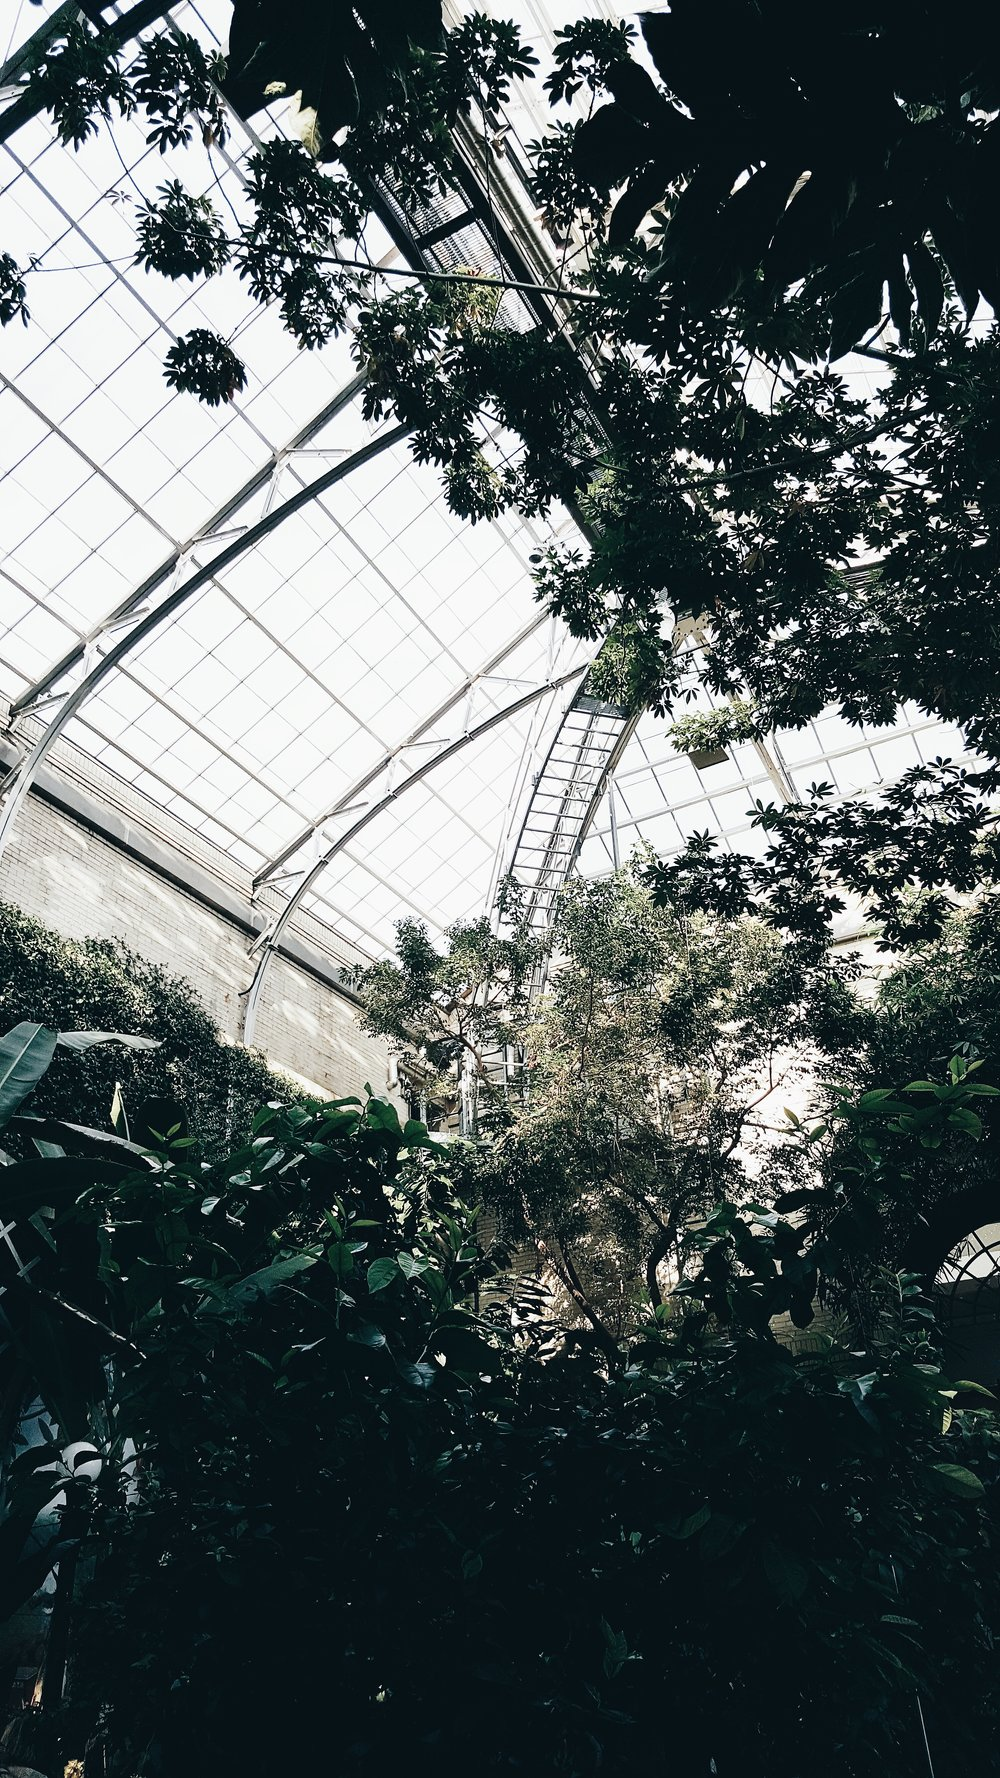 Favorite Place In DC: - United States Botanic Garden